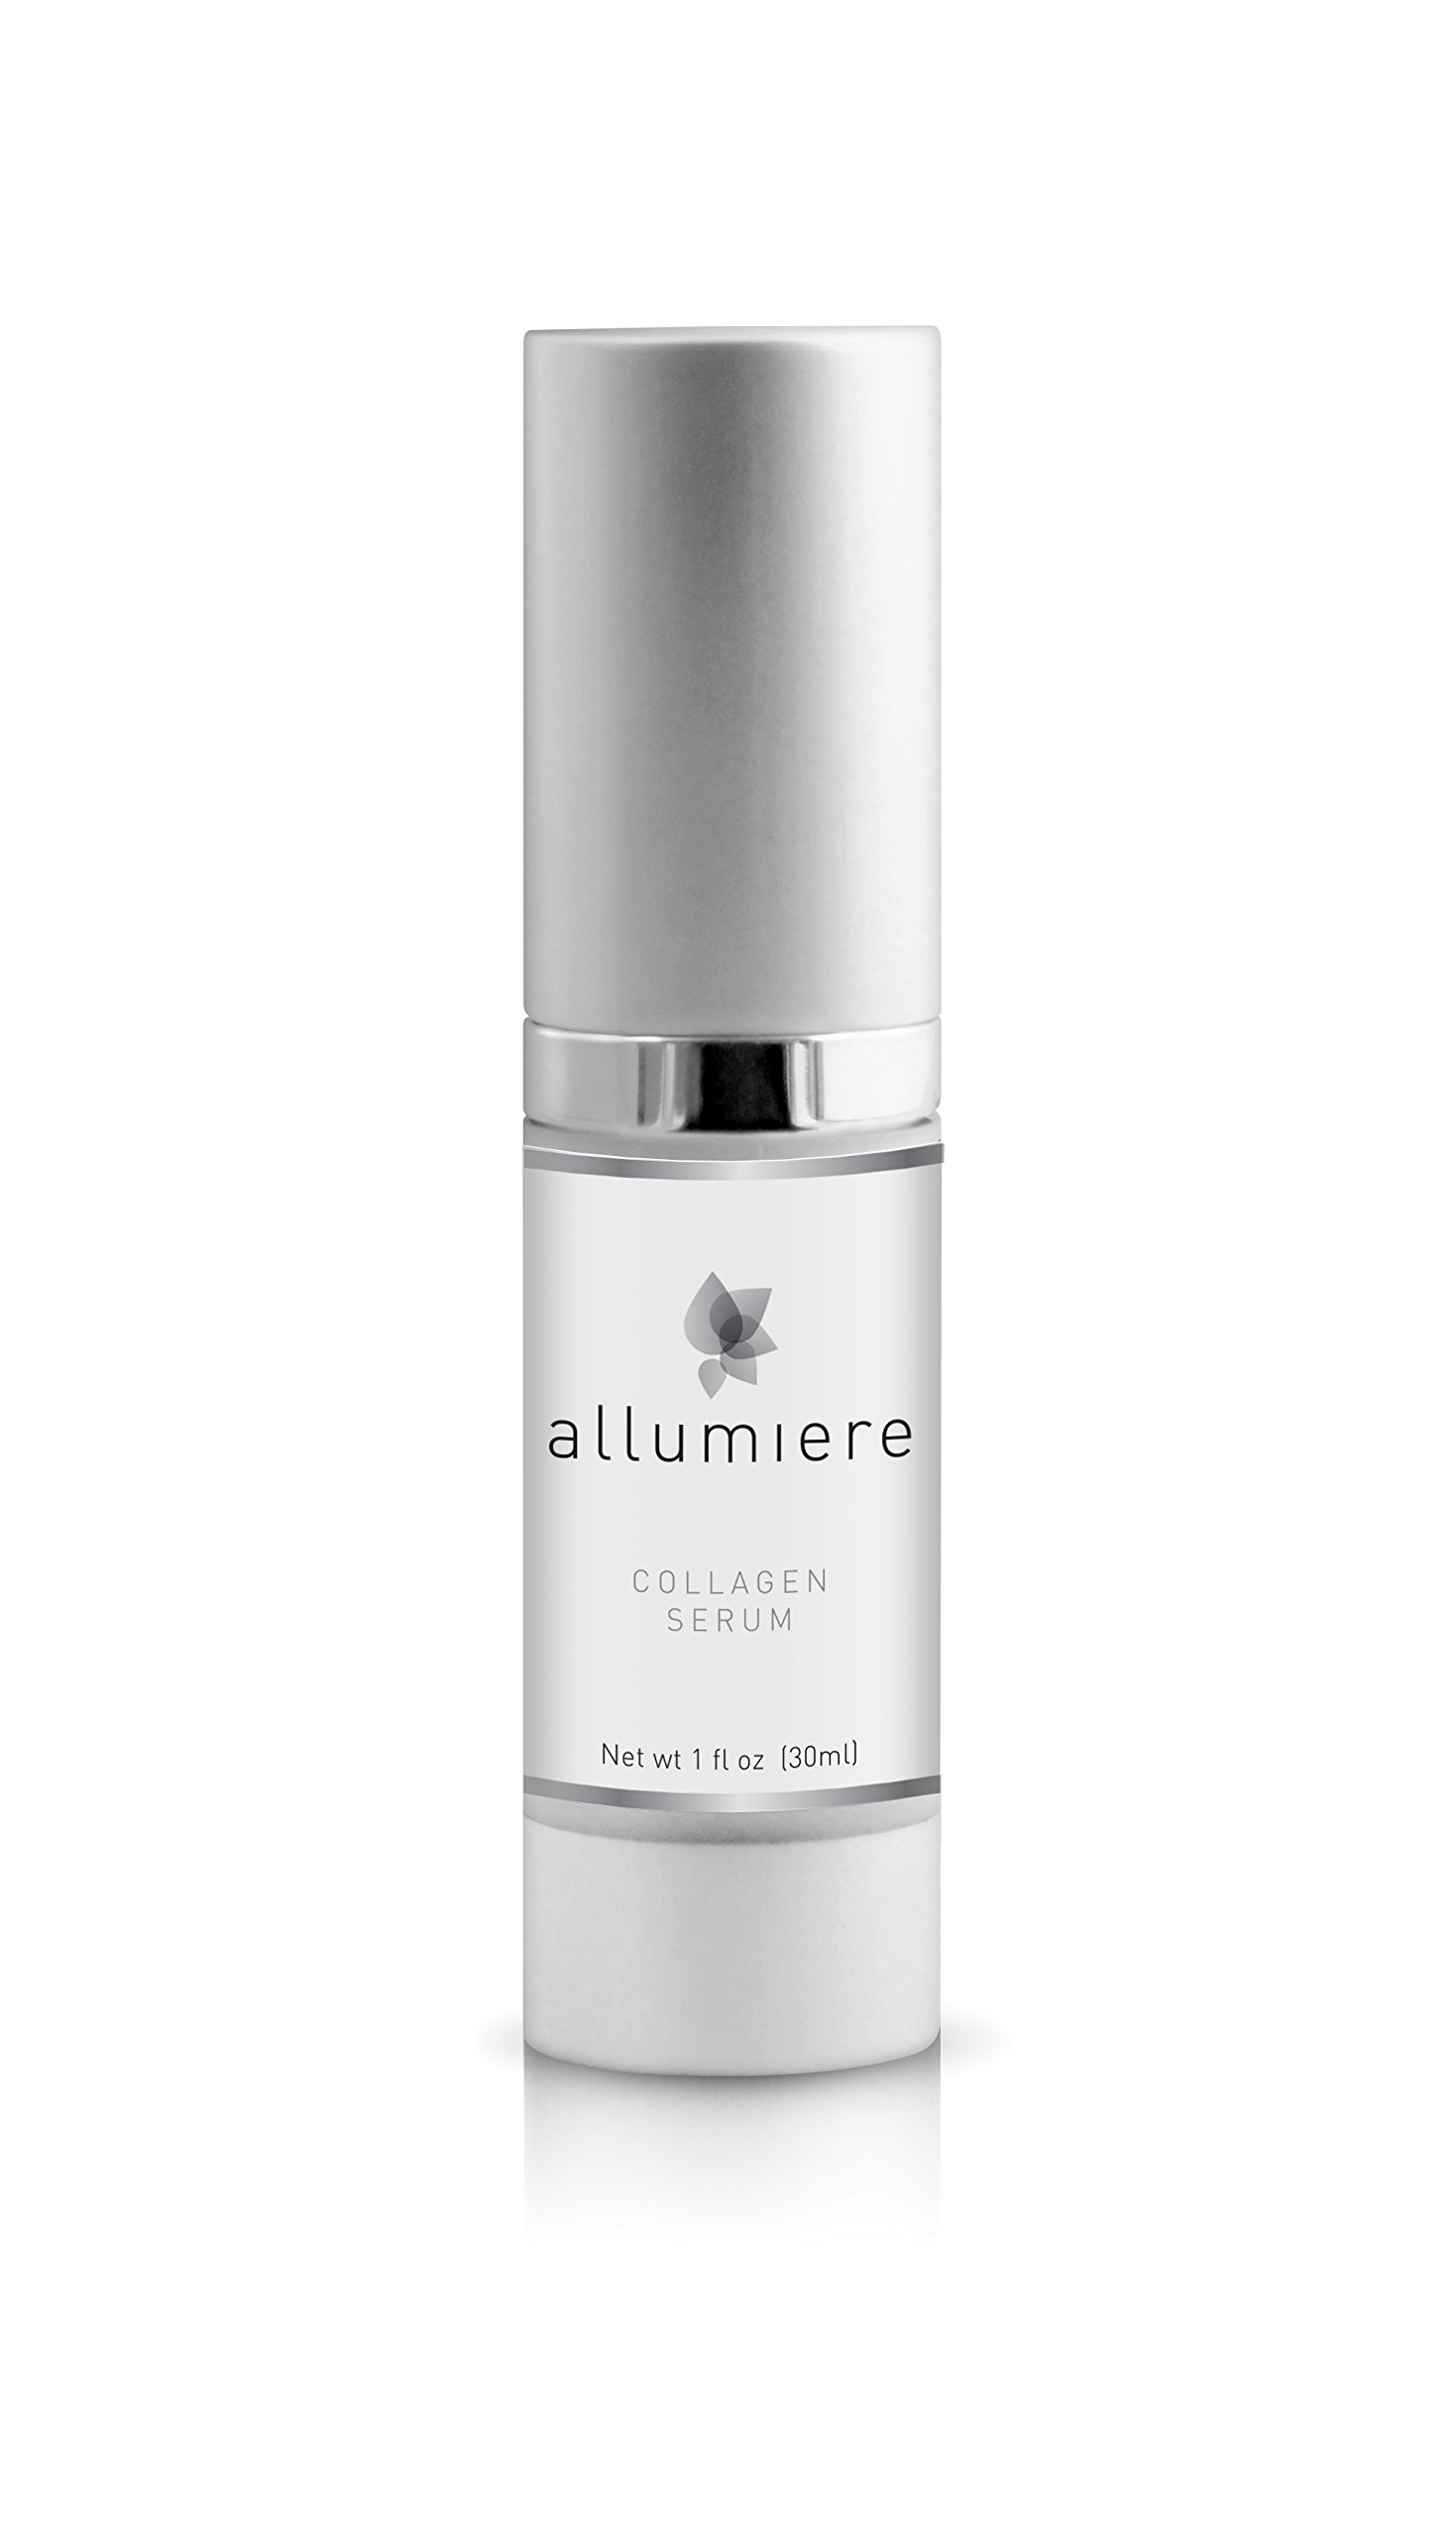 Allumiere Eye Serum-Best Selling Formula To Boost Collagen and Elastin, Deeply Hydrate Skin and Diminish Fine Lines and Wrinkles